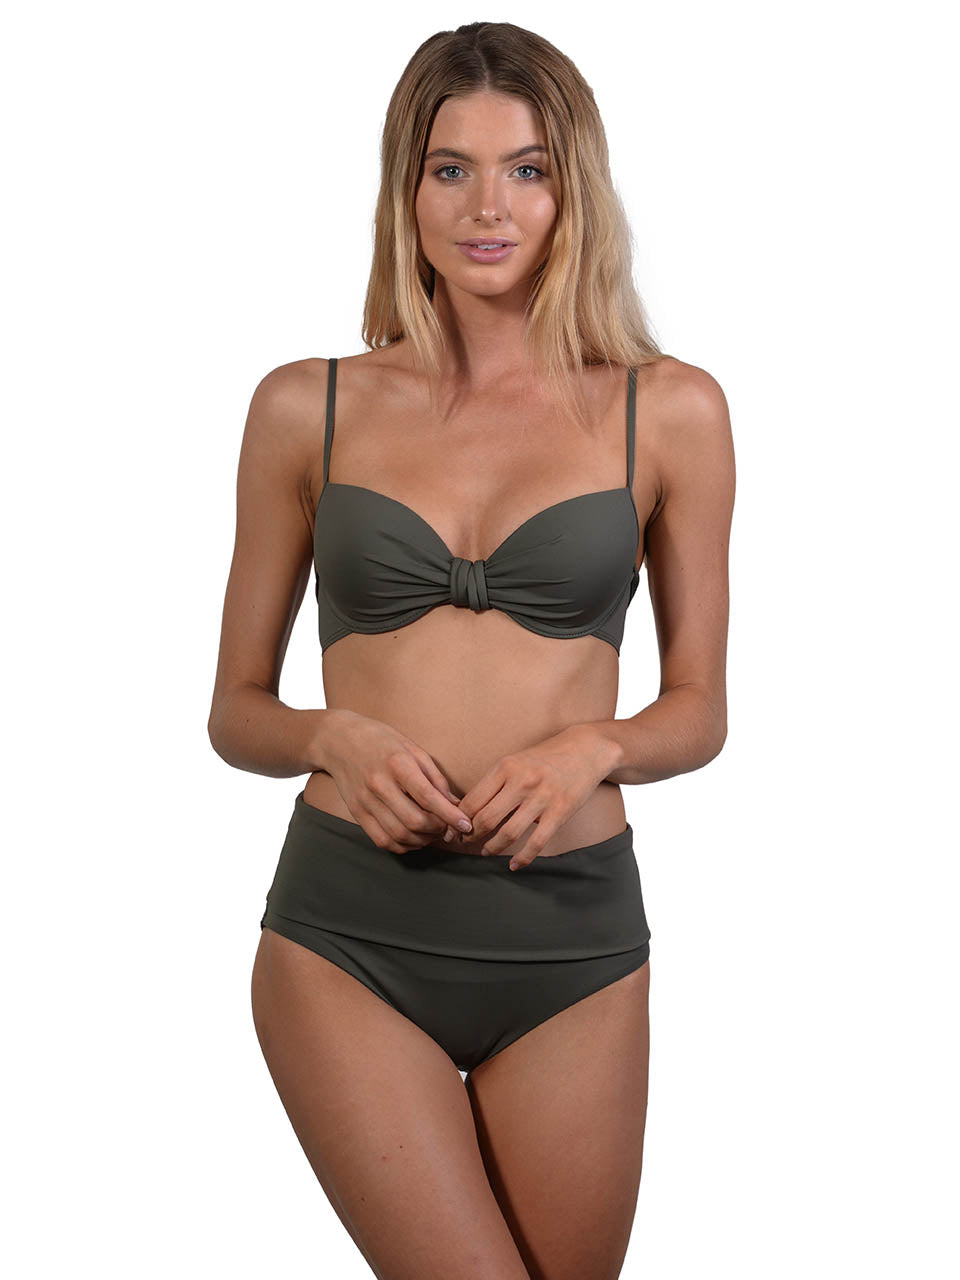 Khaki Seduce B/C Molded Underwire Bikini Top with High Waist Band Pant